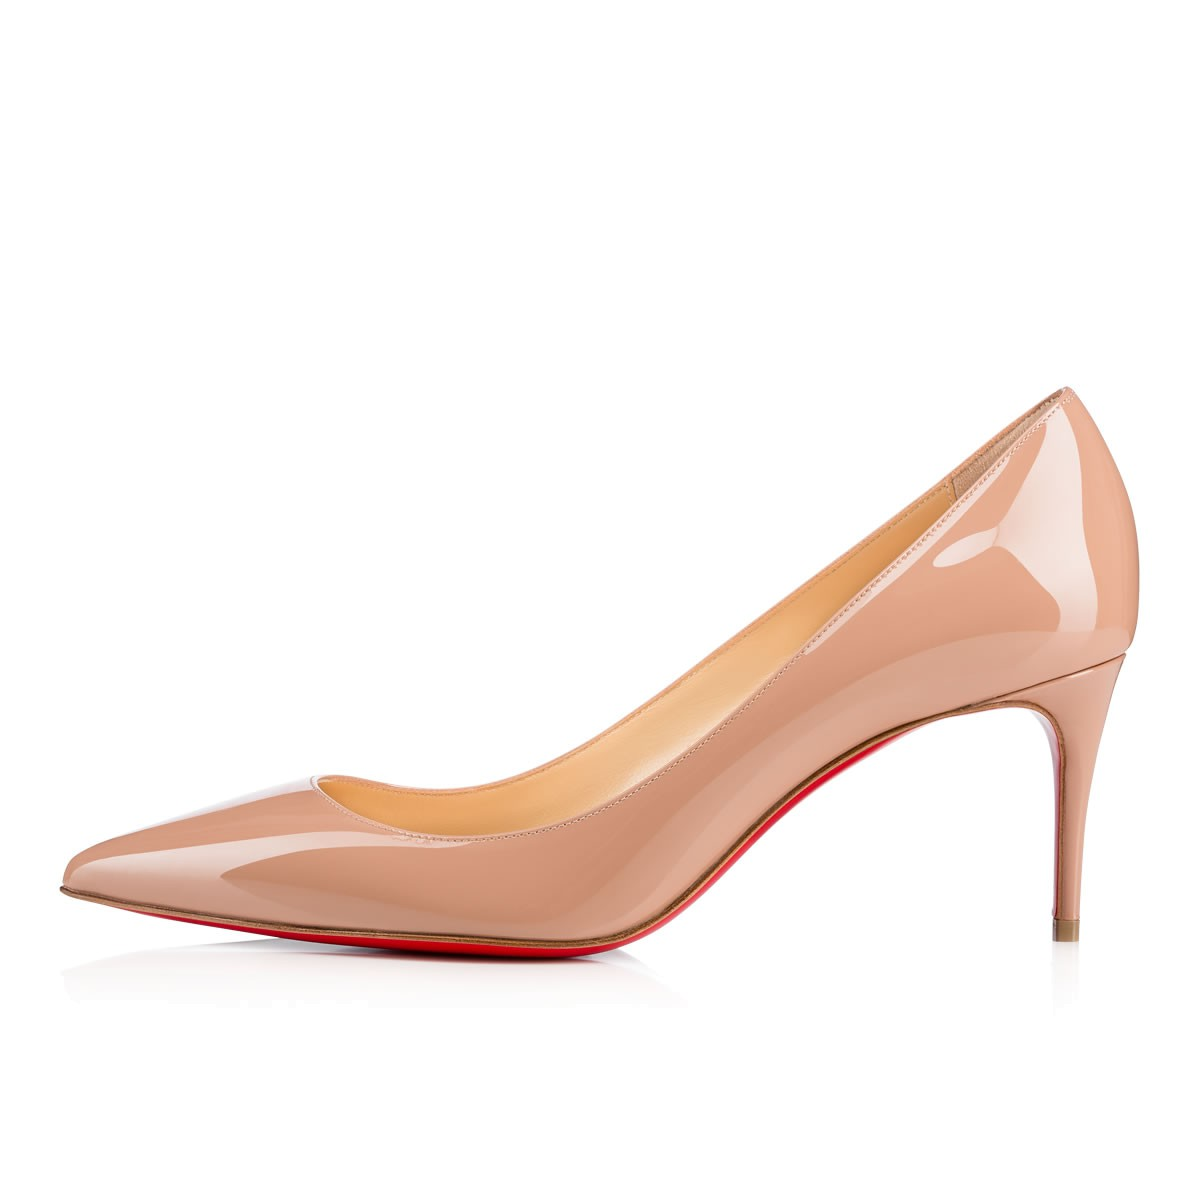 Shoes - Decollete 554 - Christian Louboutin